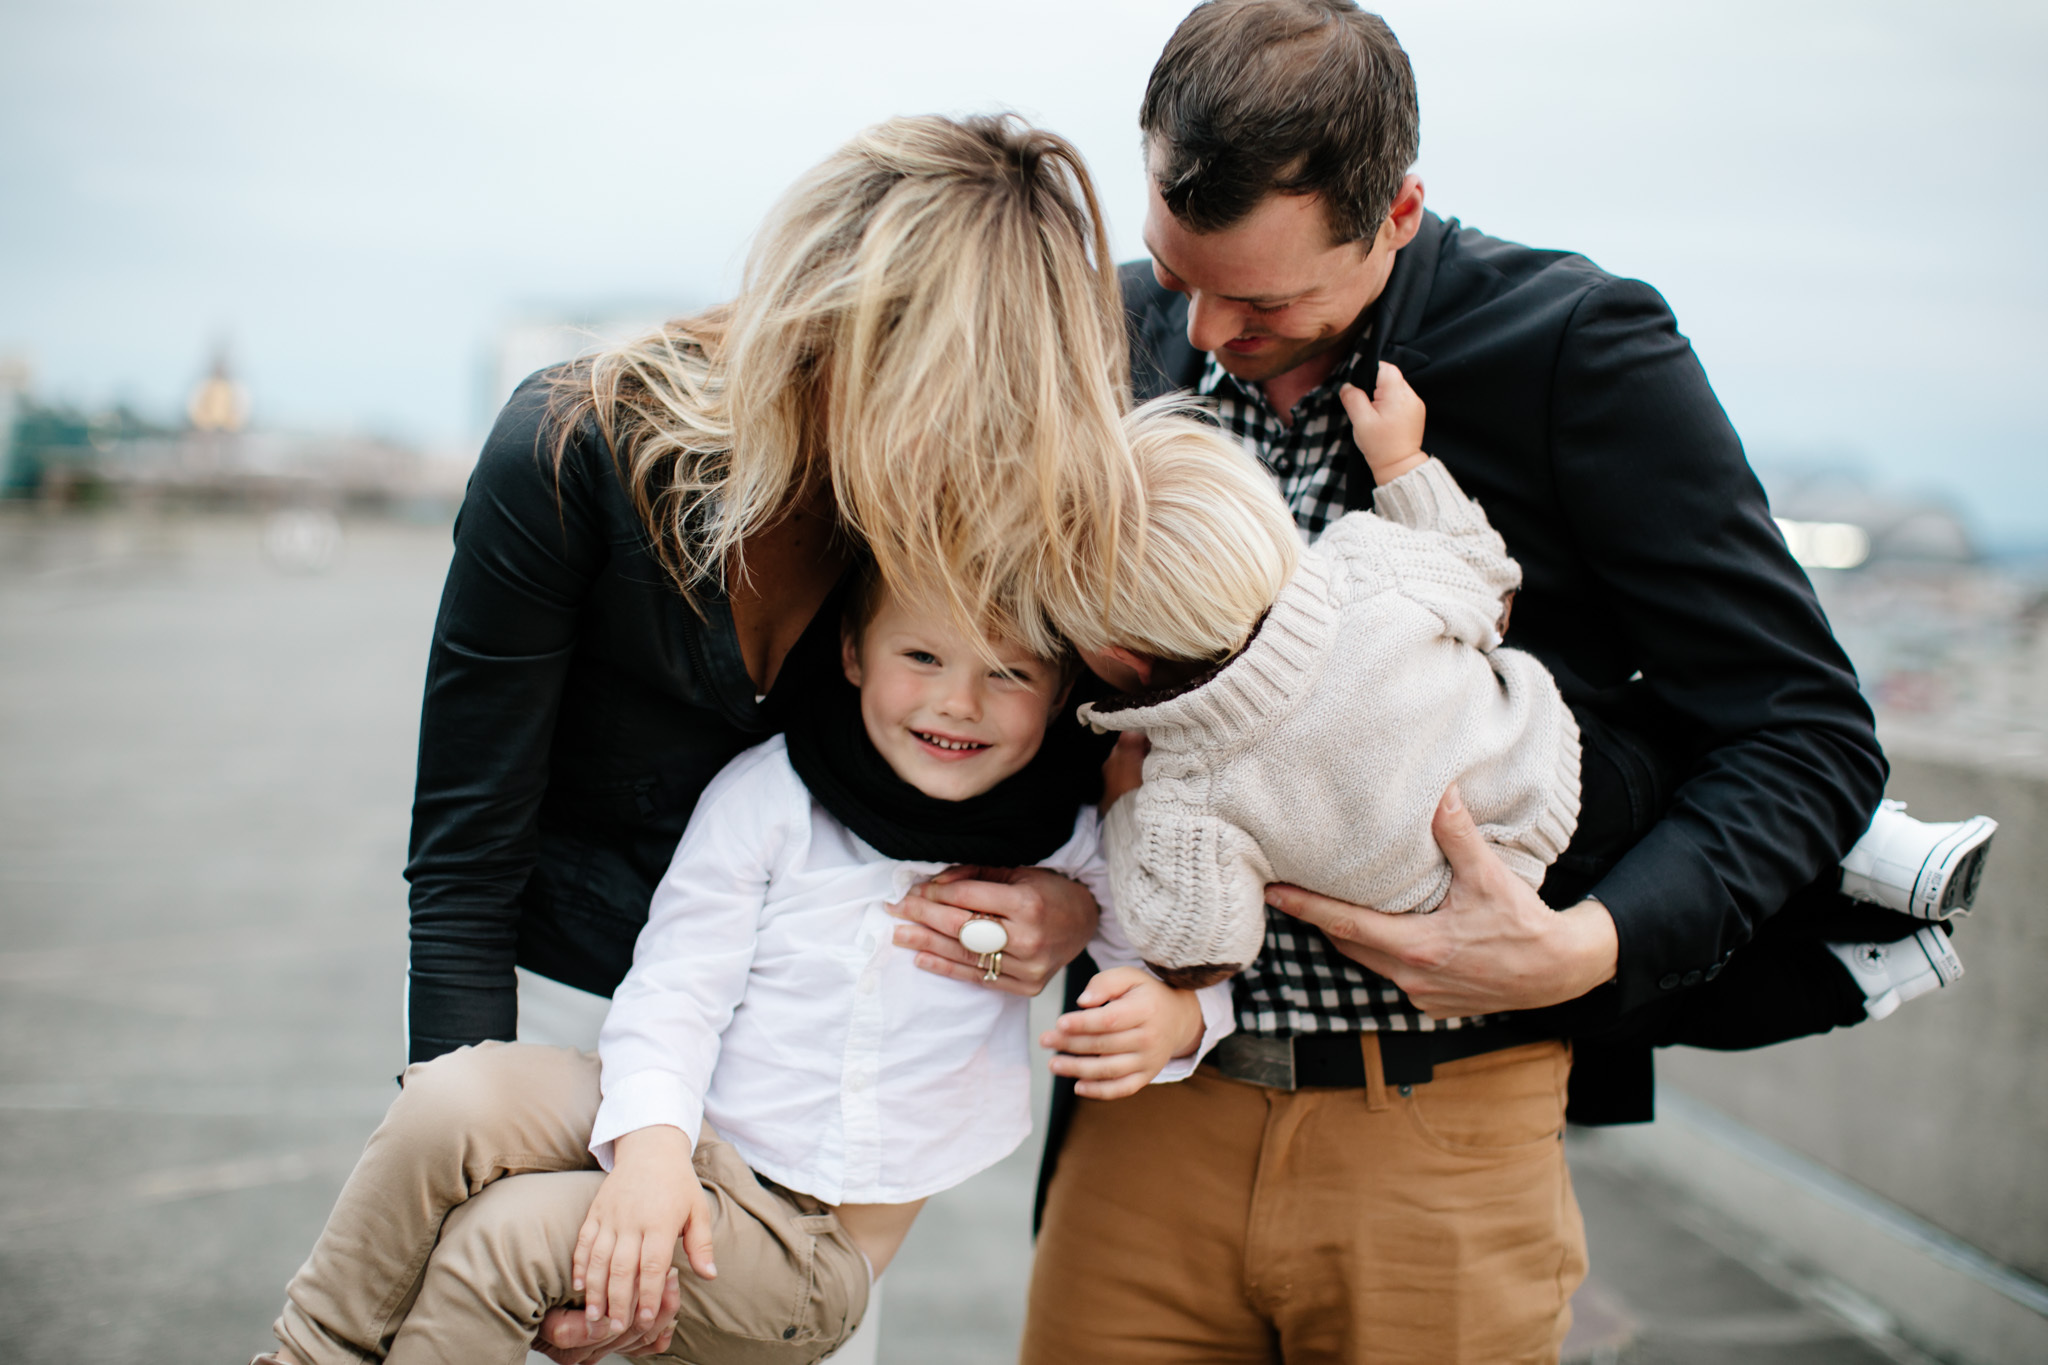 31seattle-family-photographer-catie-bergman-photography-pnw-newborn-portrait-lifestylephotography.jpg